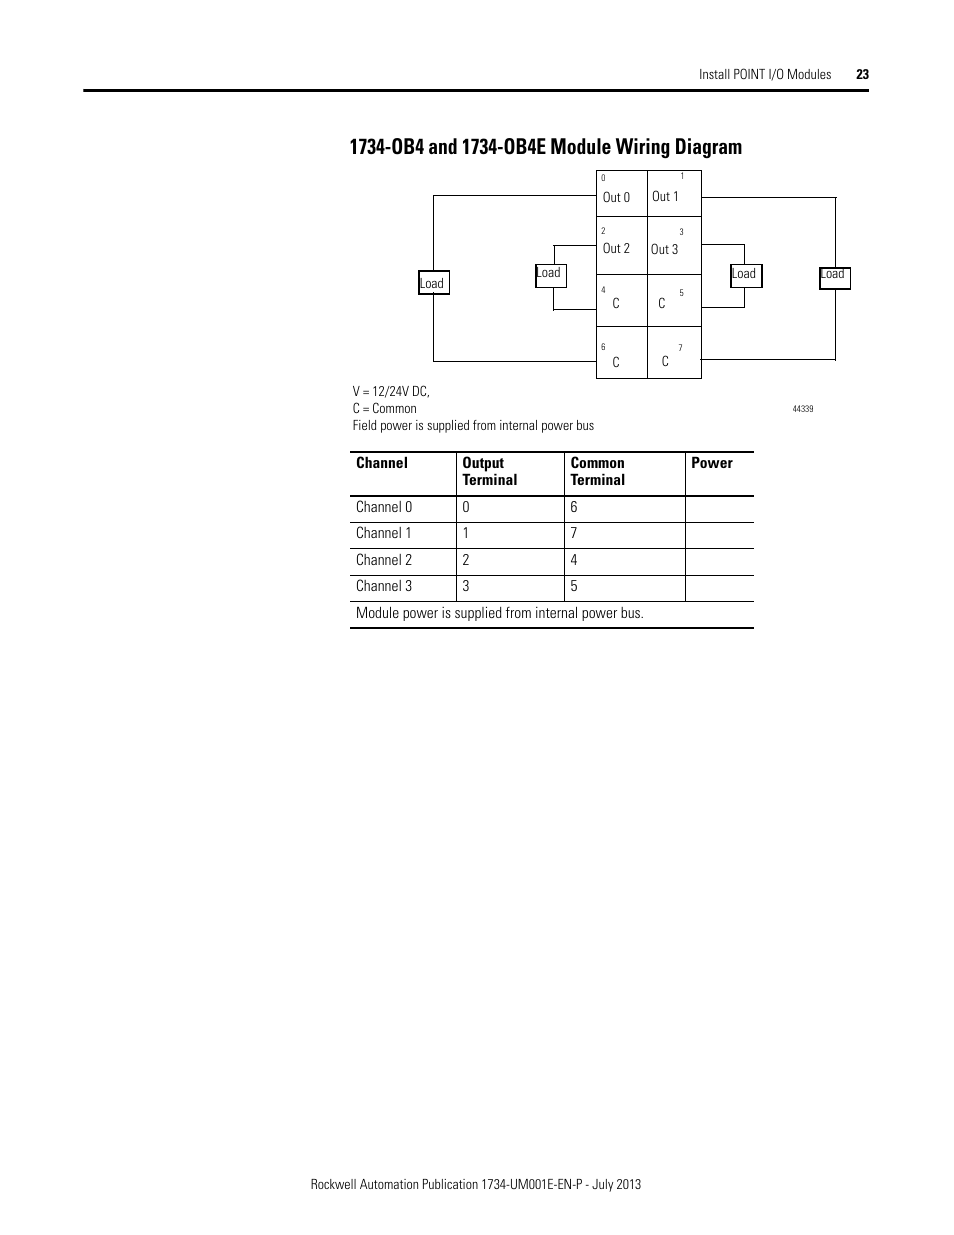 medium resolution of 1734 ob4 and 1734 ob4e module wiring diagram rockwell automation 1734 xxxx point i o digital and analog modules and pointblock i o modules user manual